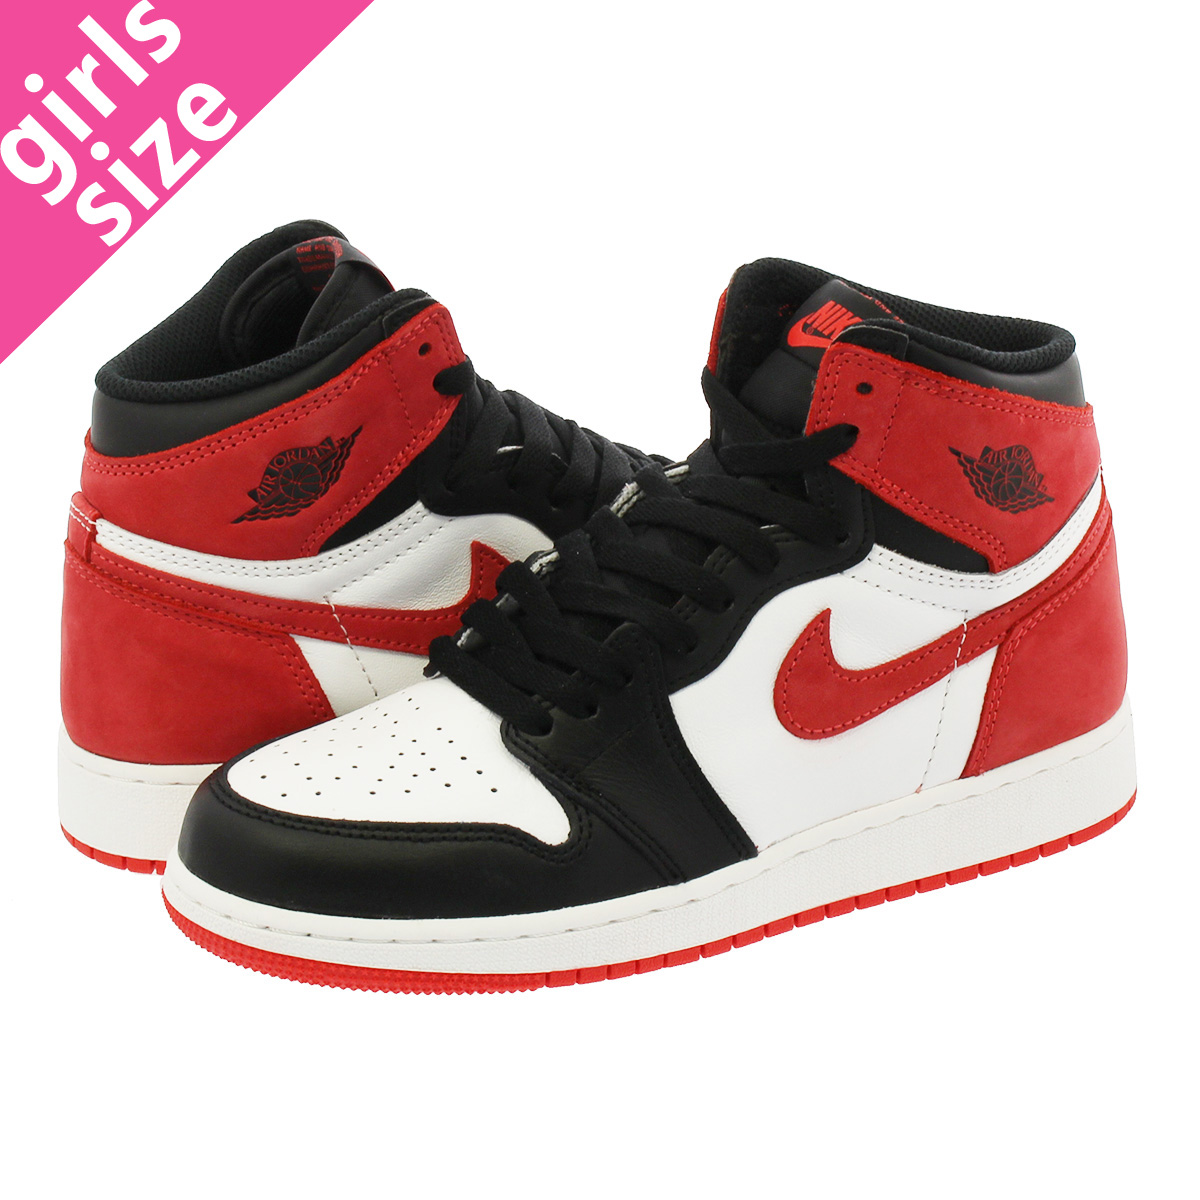 e18730c78b16 NIKE AIR JORDAN 1 RETRO HIGH OG BG Nike Air Jordan 1 nostalgic high OG BG  SUMMIT WHITE BLACK TRACK RED